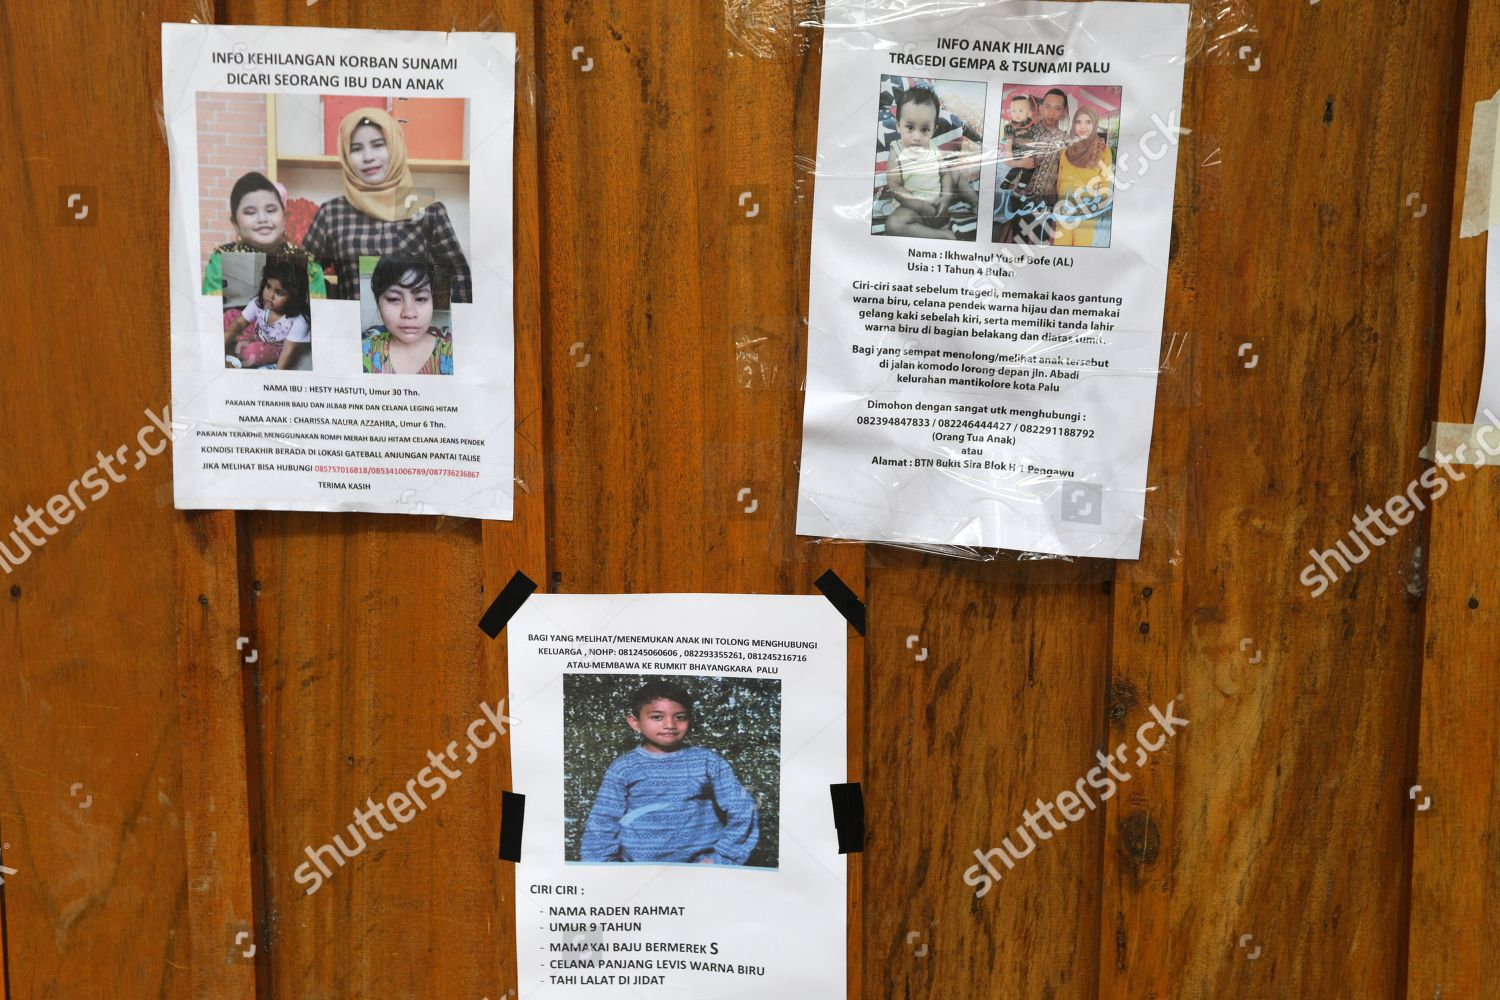 Information About Missing Persons Posted On Wooden Editorial Stock Photo Stock Image Shutterstock